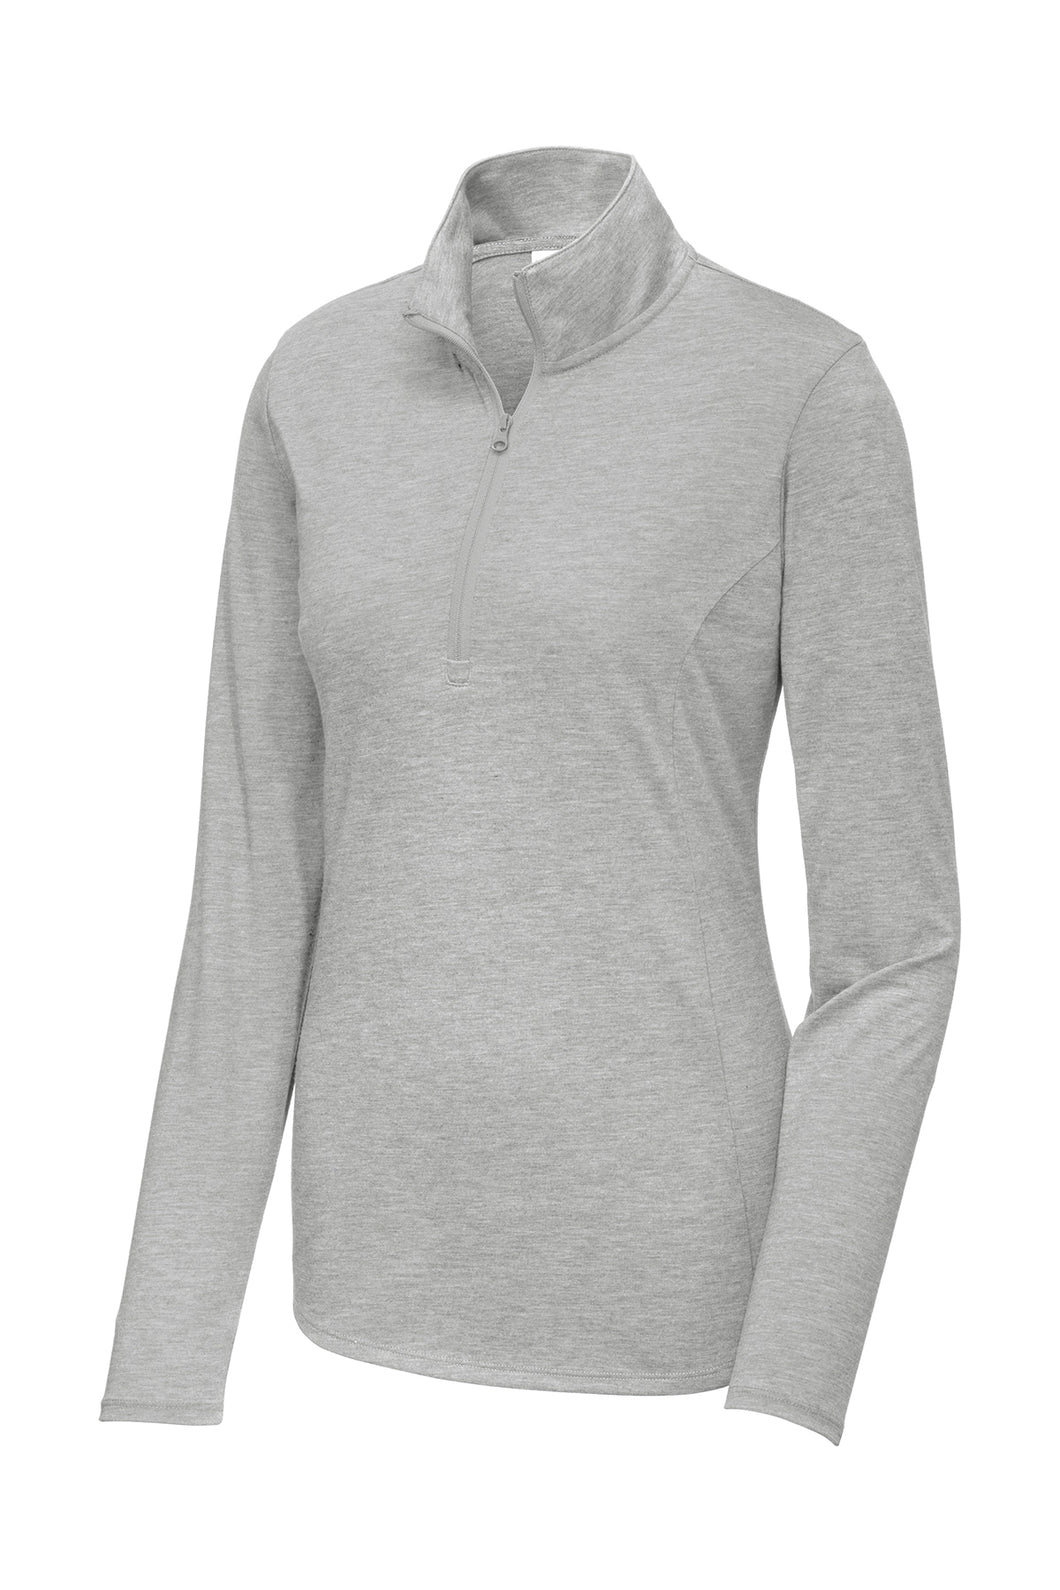 Ladies Fusion Performance Quarter-zip Pullover - Grey